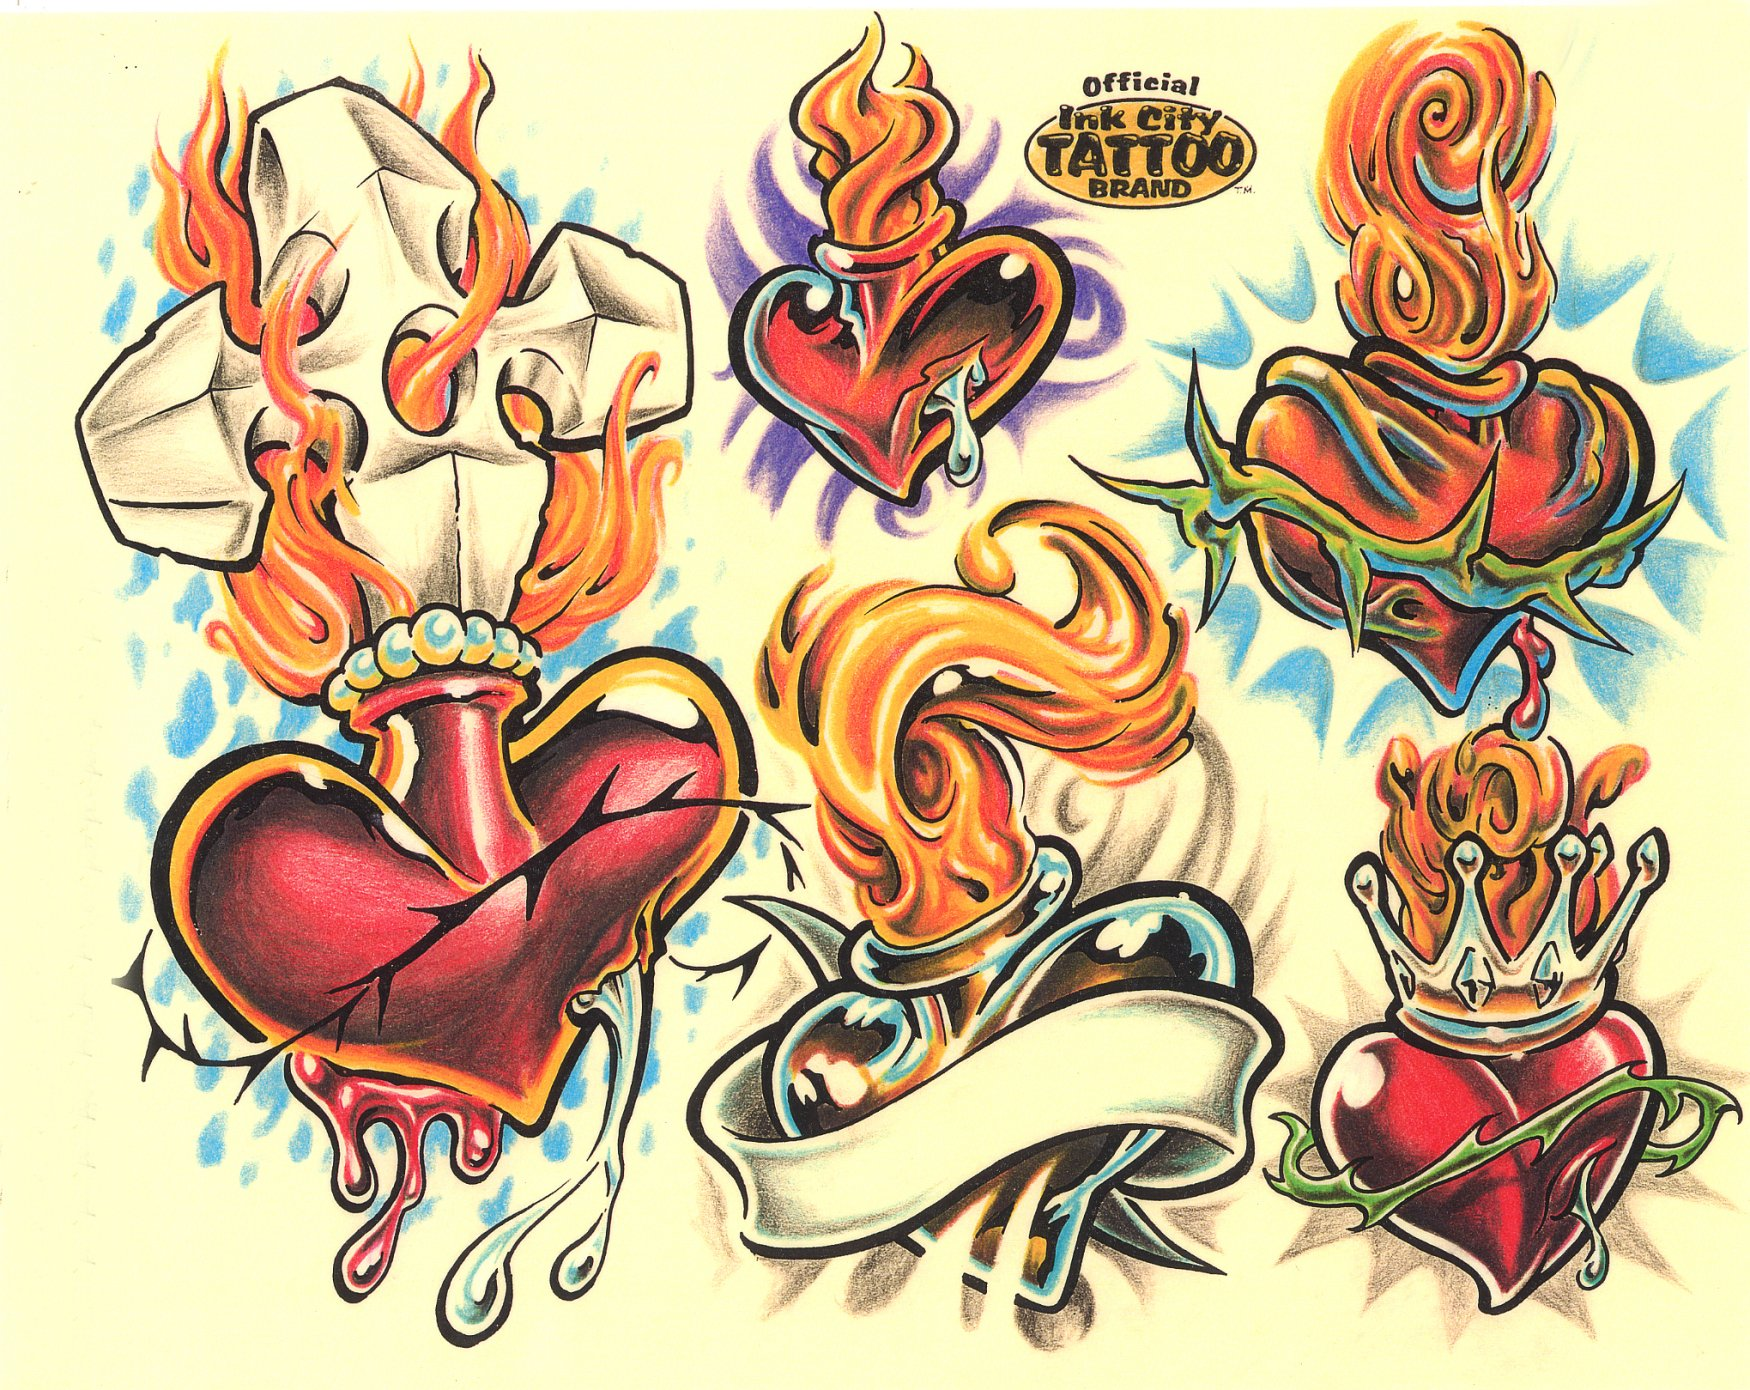 Heart tattoo designs by Ink City.